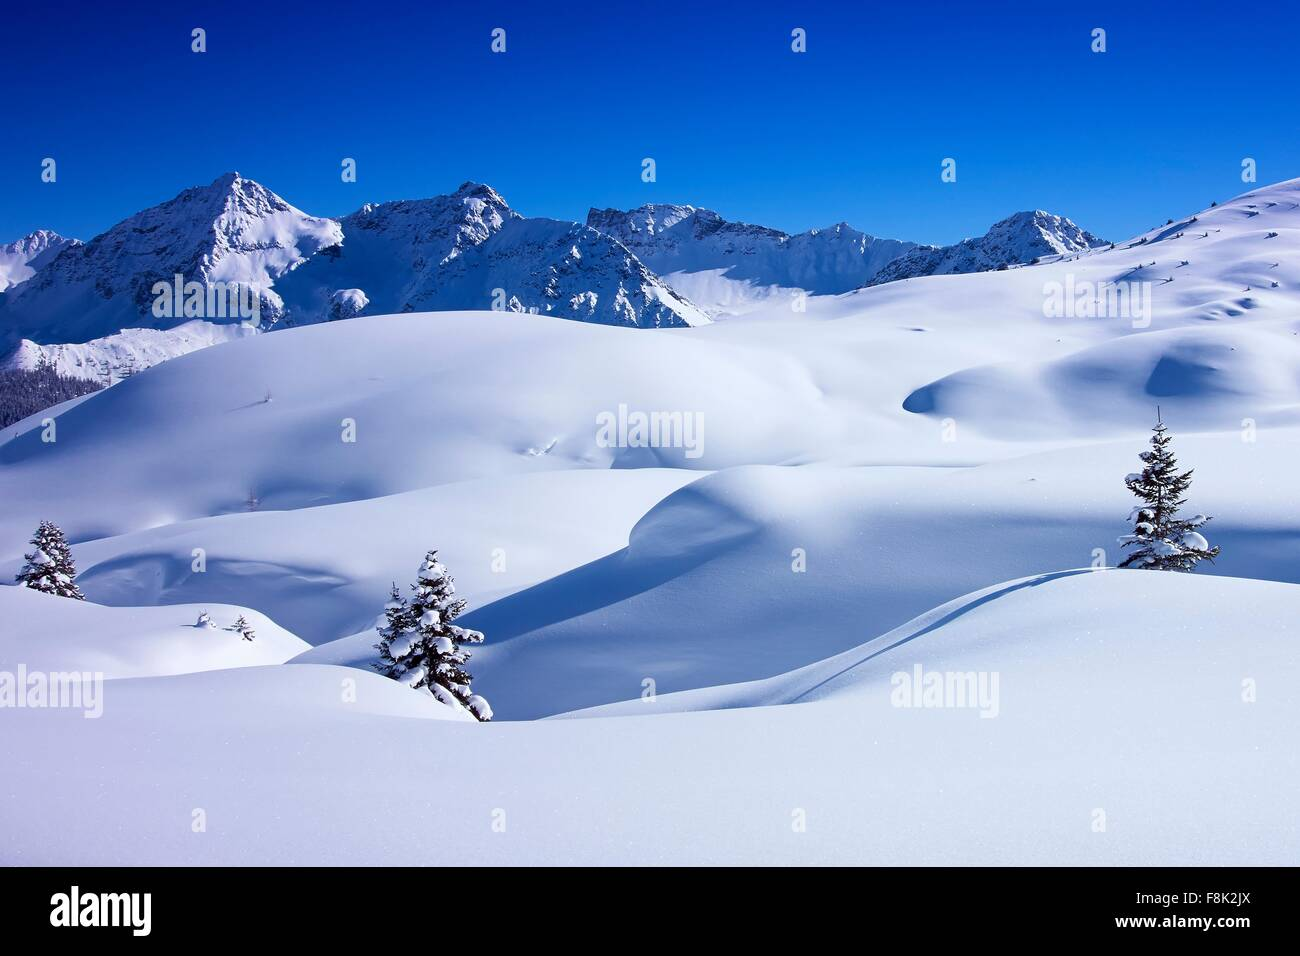 Deep snow covered landscape and fir trees, Arosa, Switzerland - Stock Image